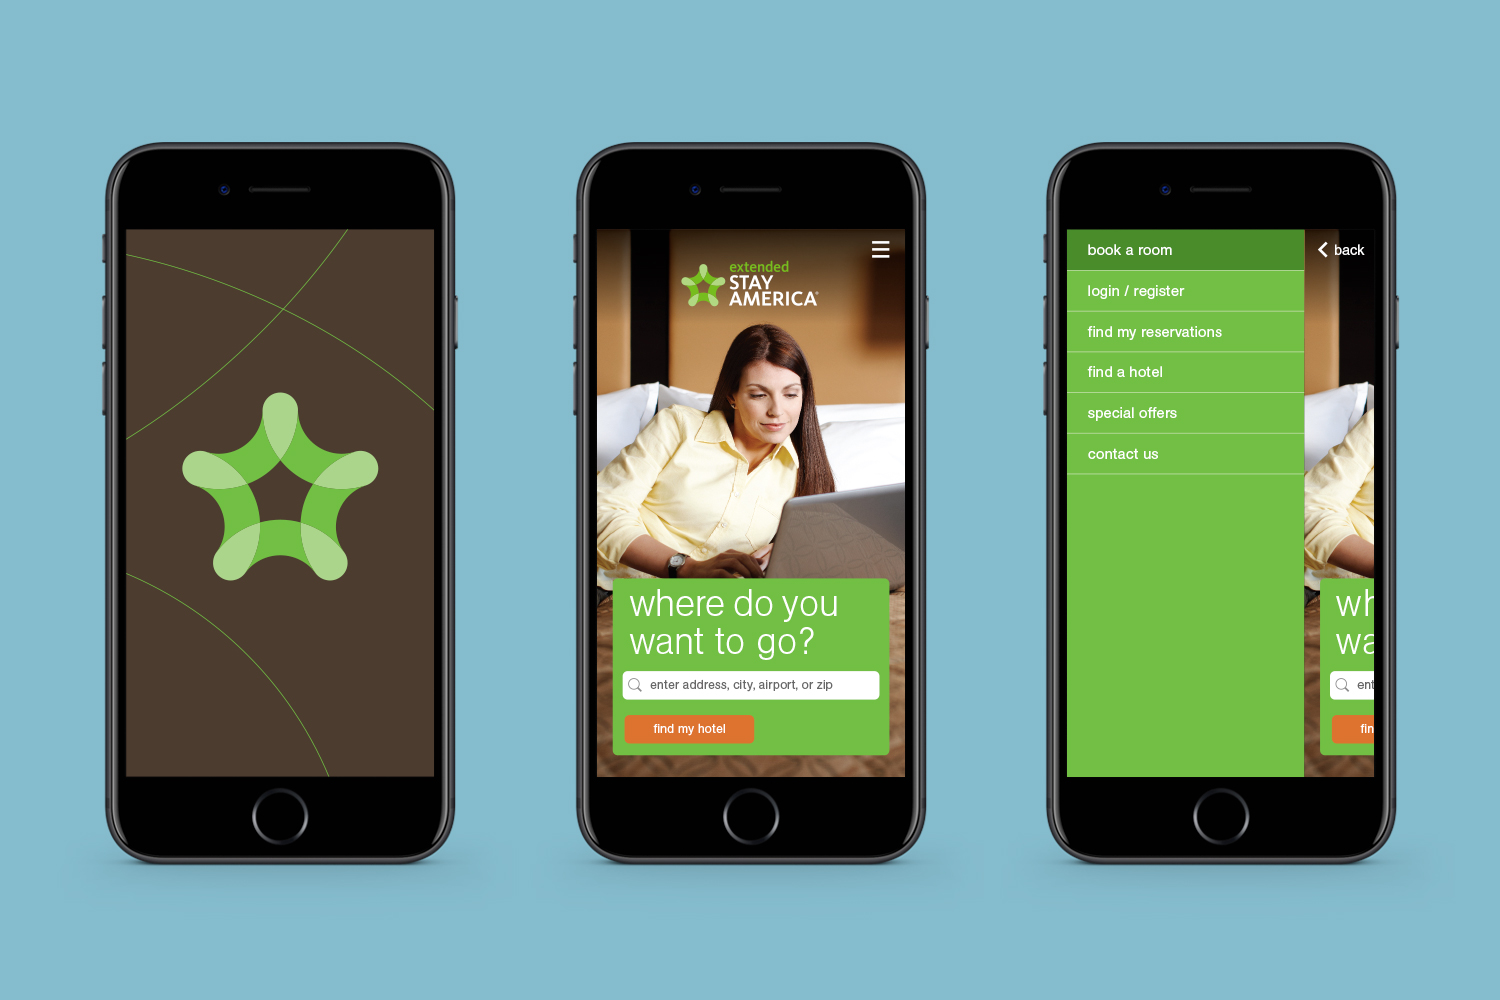 Extended Stay America mobile app screens